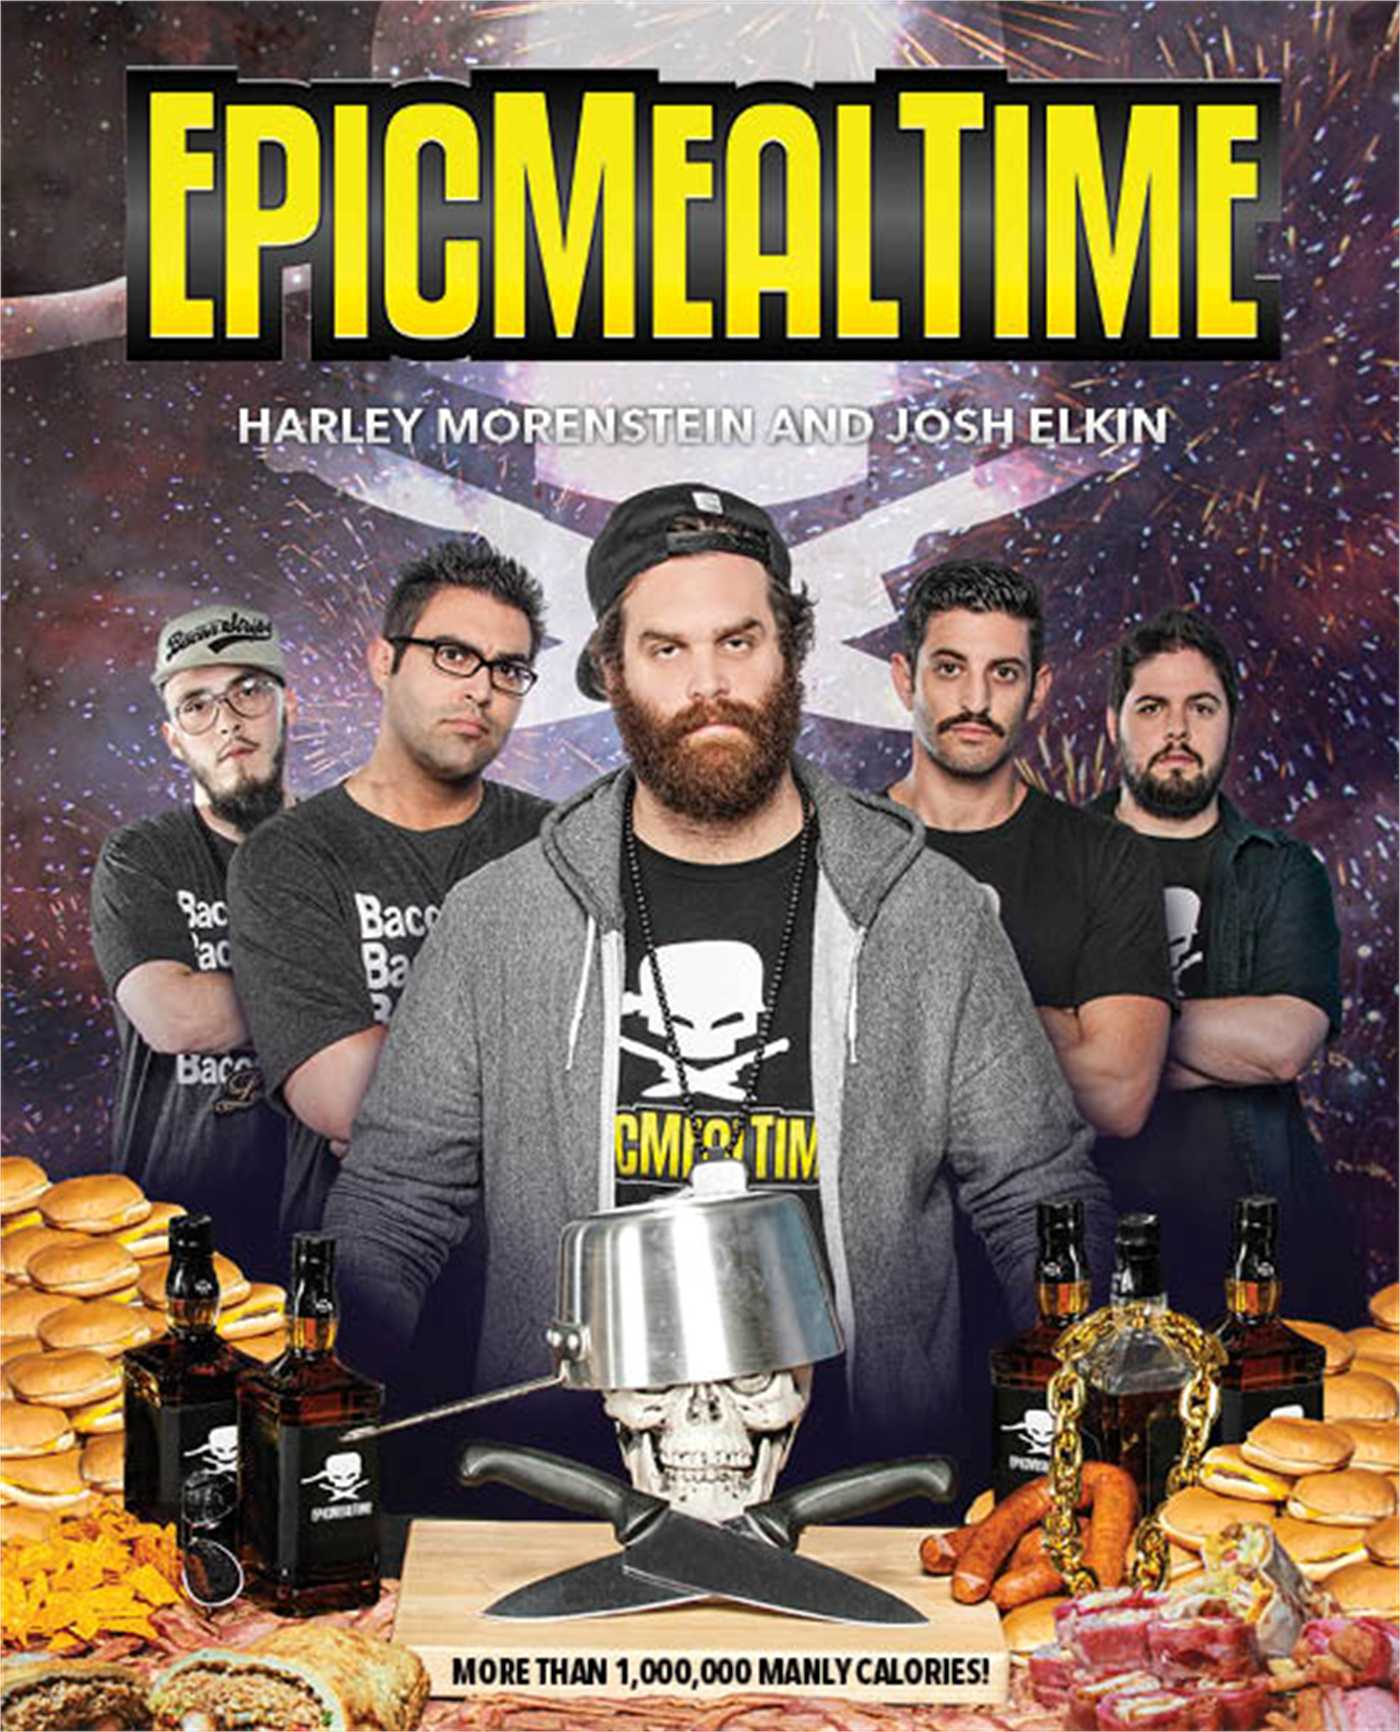 Epic-meal-time-9781476746029_hr